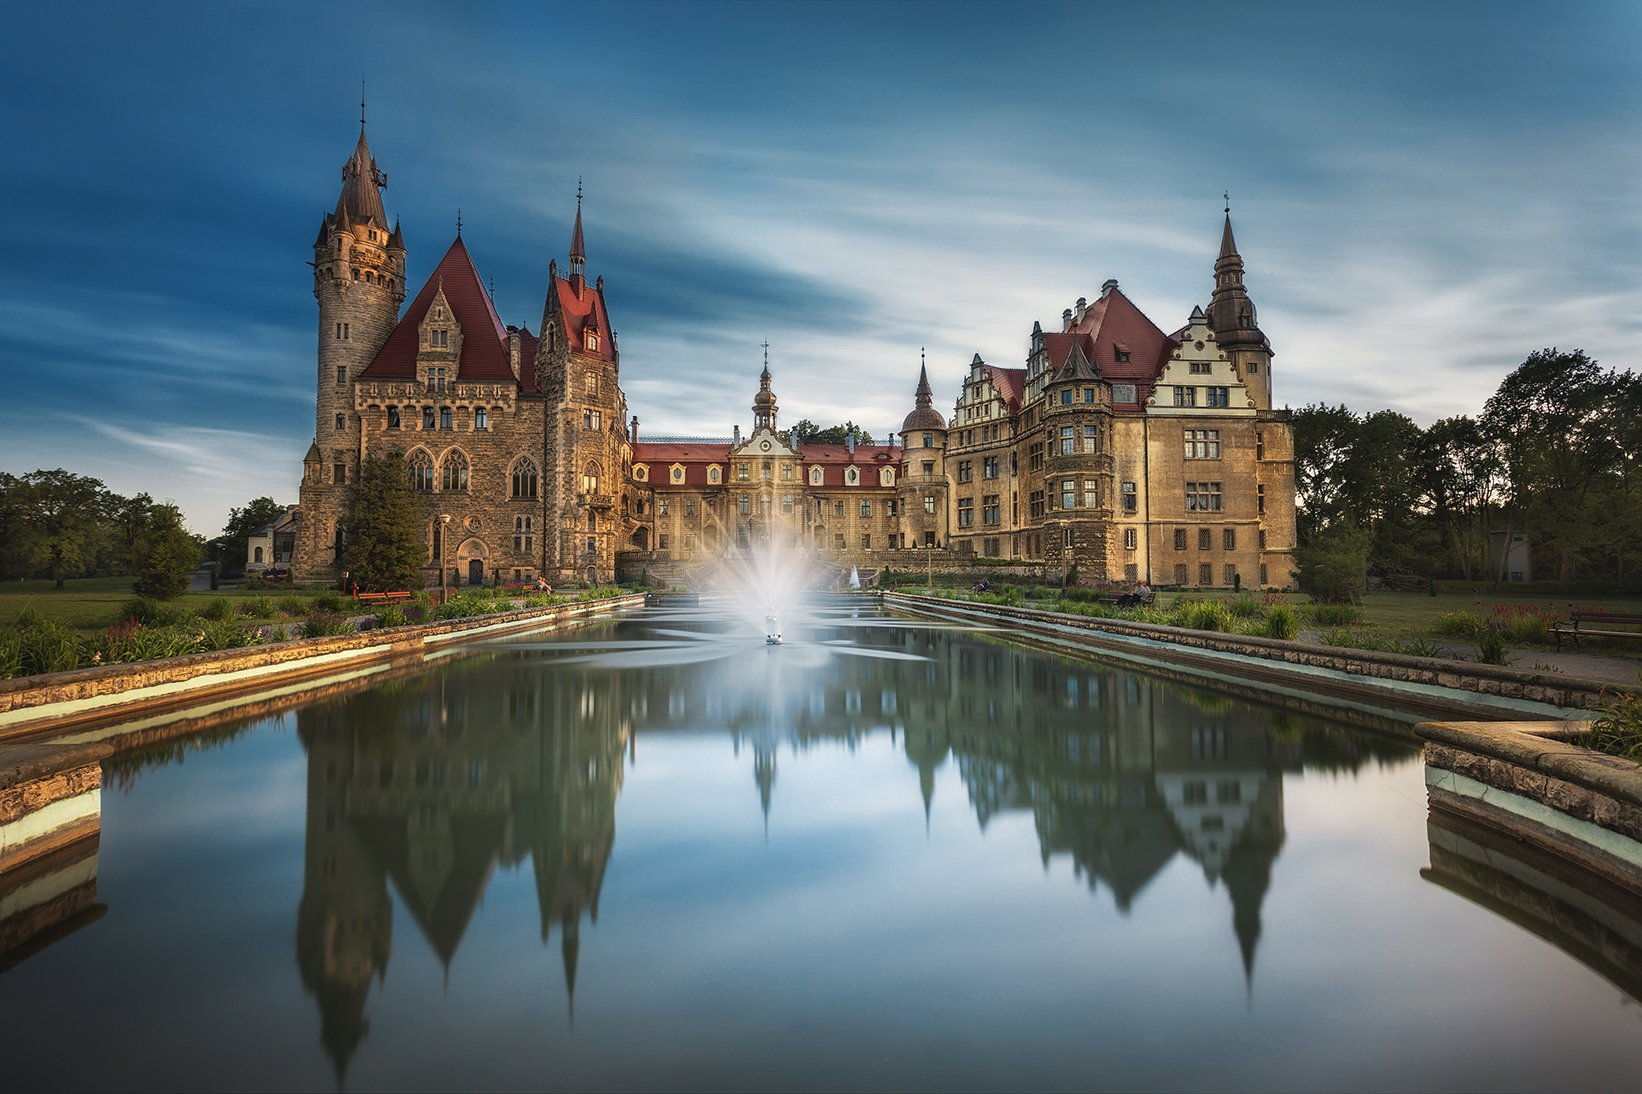 palace, castle, building, architecture, pool, water, long exposure, clouds, , Patrycja